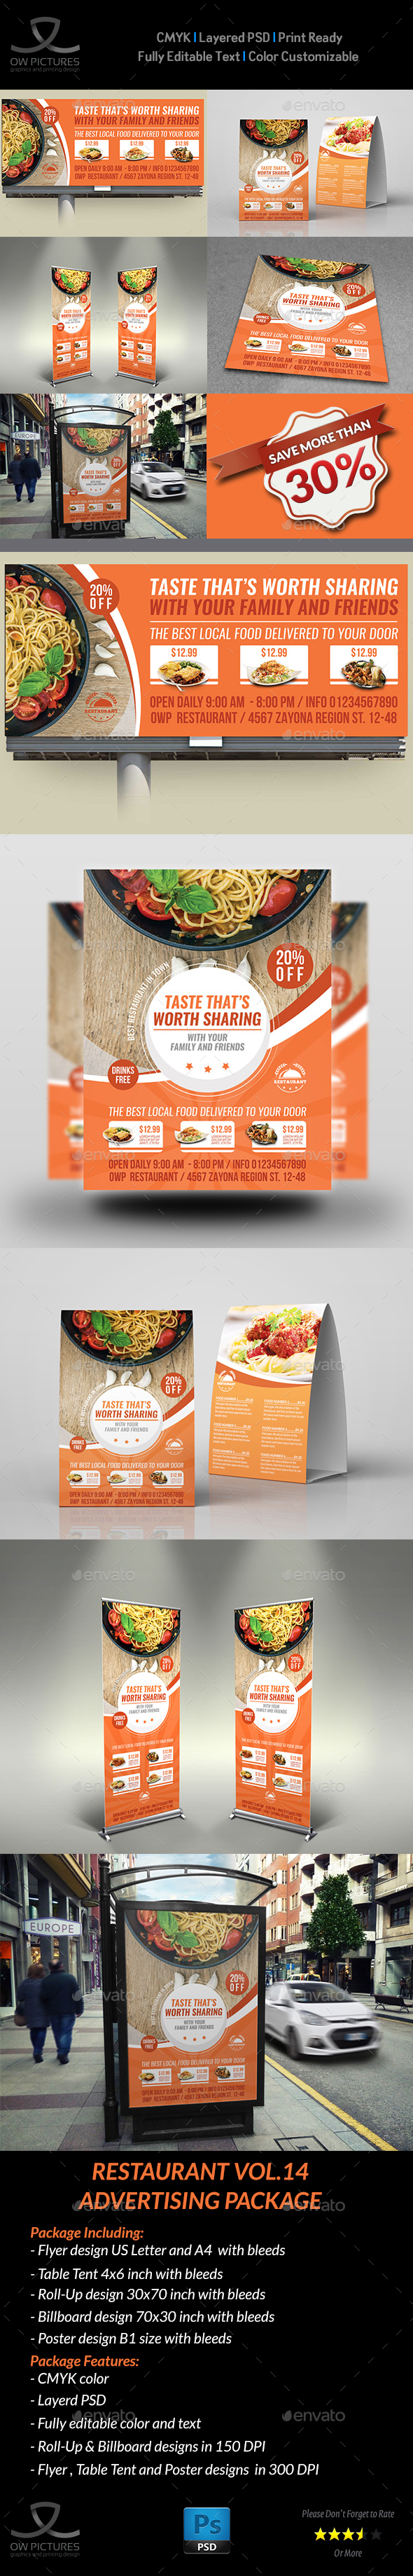 Restaurant Advertising Bundle Template Vol.14